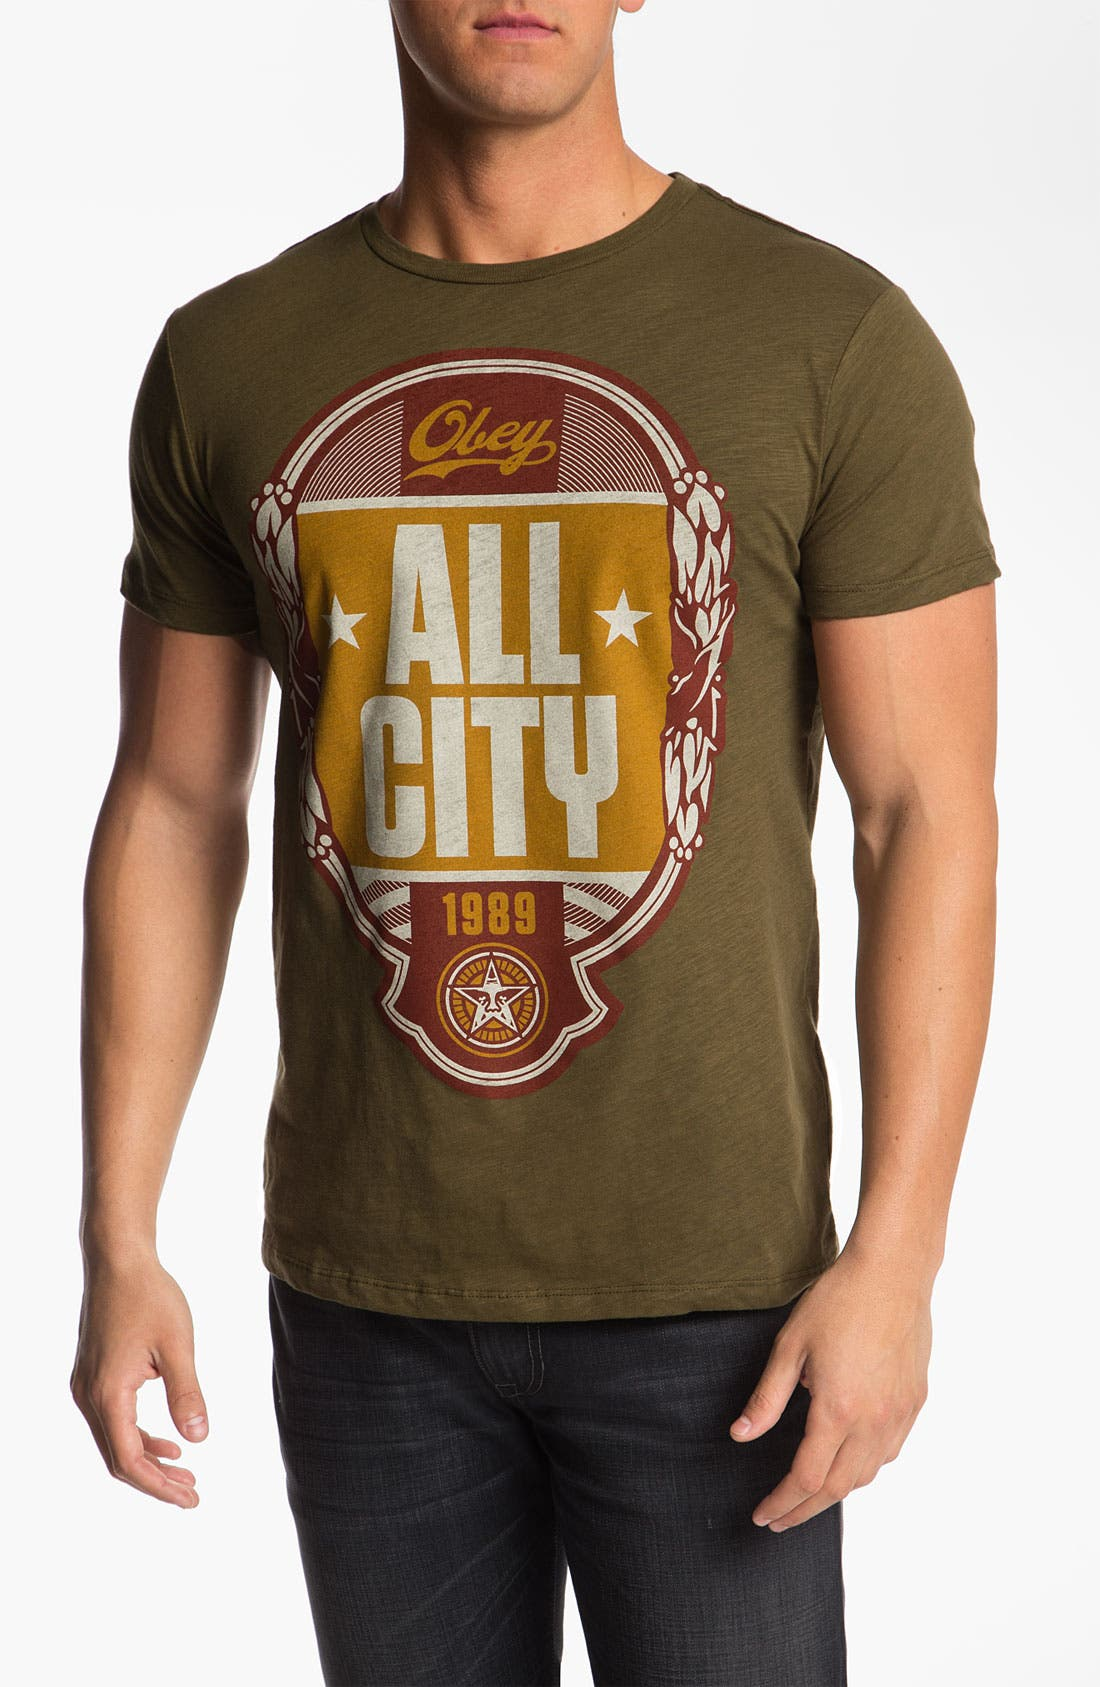 Alternate Image 1 Selected - Obey 'All City' Graphic T-Shirt